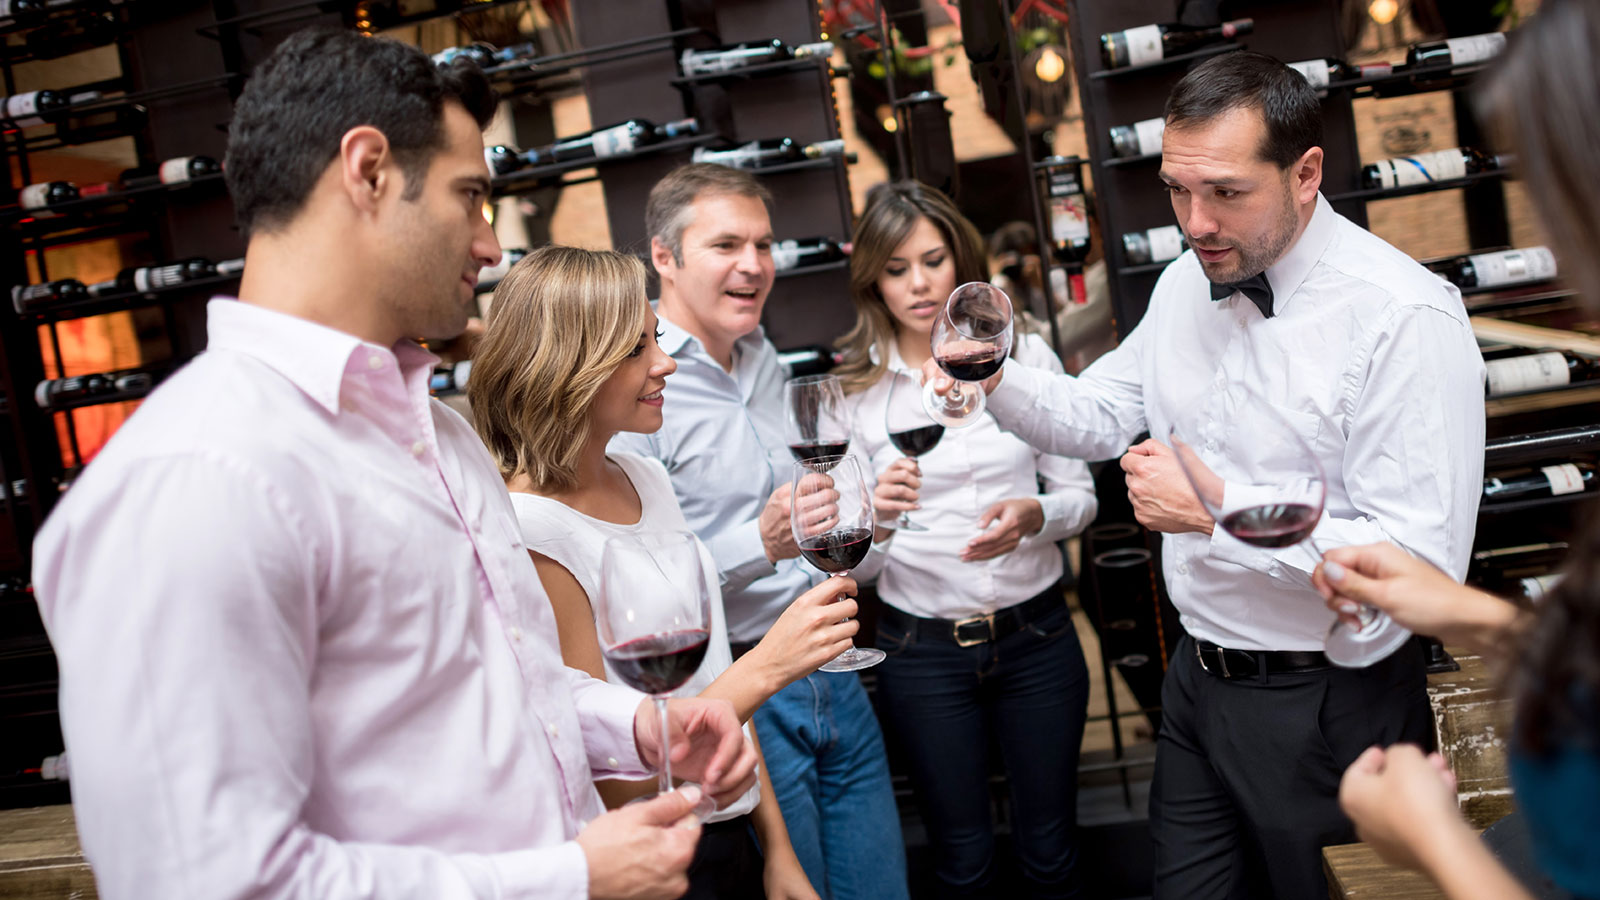 Sommelier Roundtable: What Advice Do You Give Wine Newbies? photo